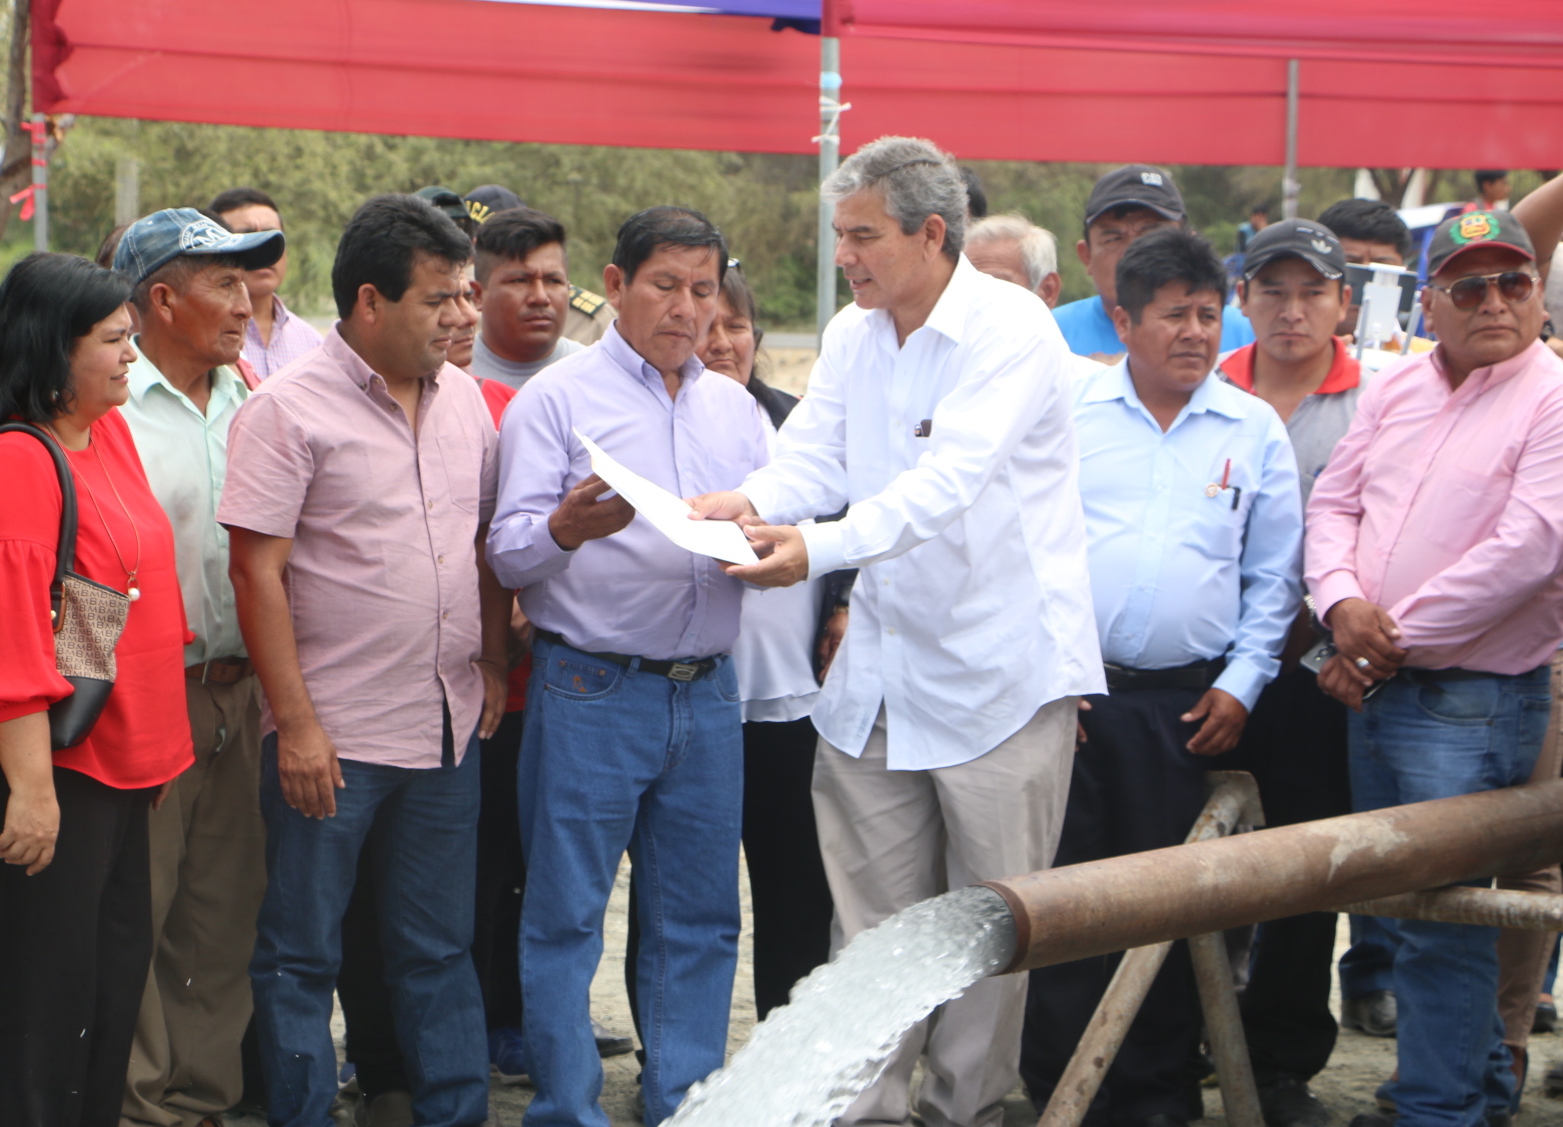 Piura (Peru) Regional Governor Reynaldo Hilbck Guzman, center, dedicates the Church-sponsored well in San Cristo, Peru, on Nov. 23, 2018. The well will provide clean water to thousands of local residents and is expected to be a boon to the health of the region.